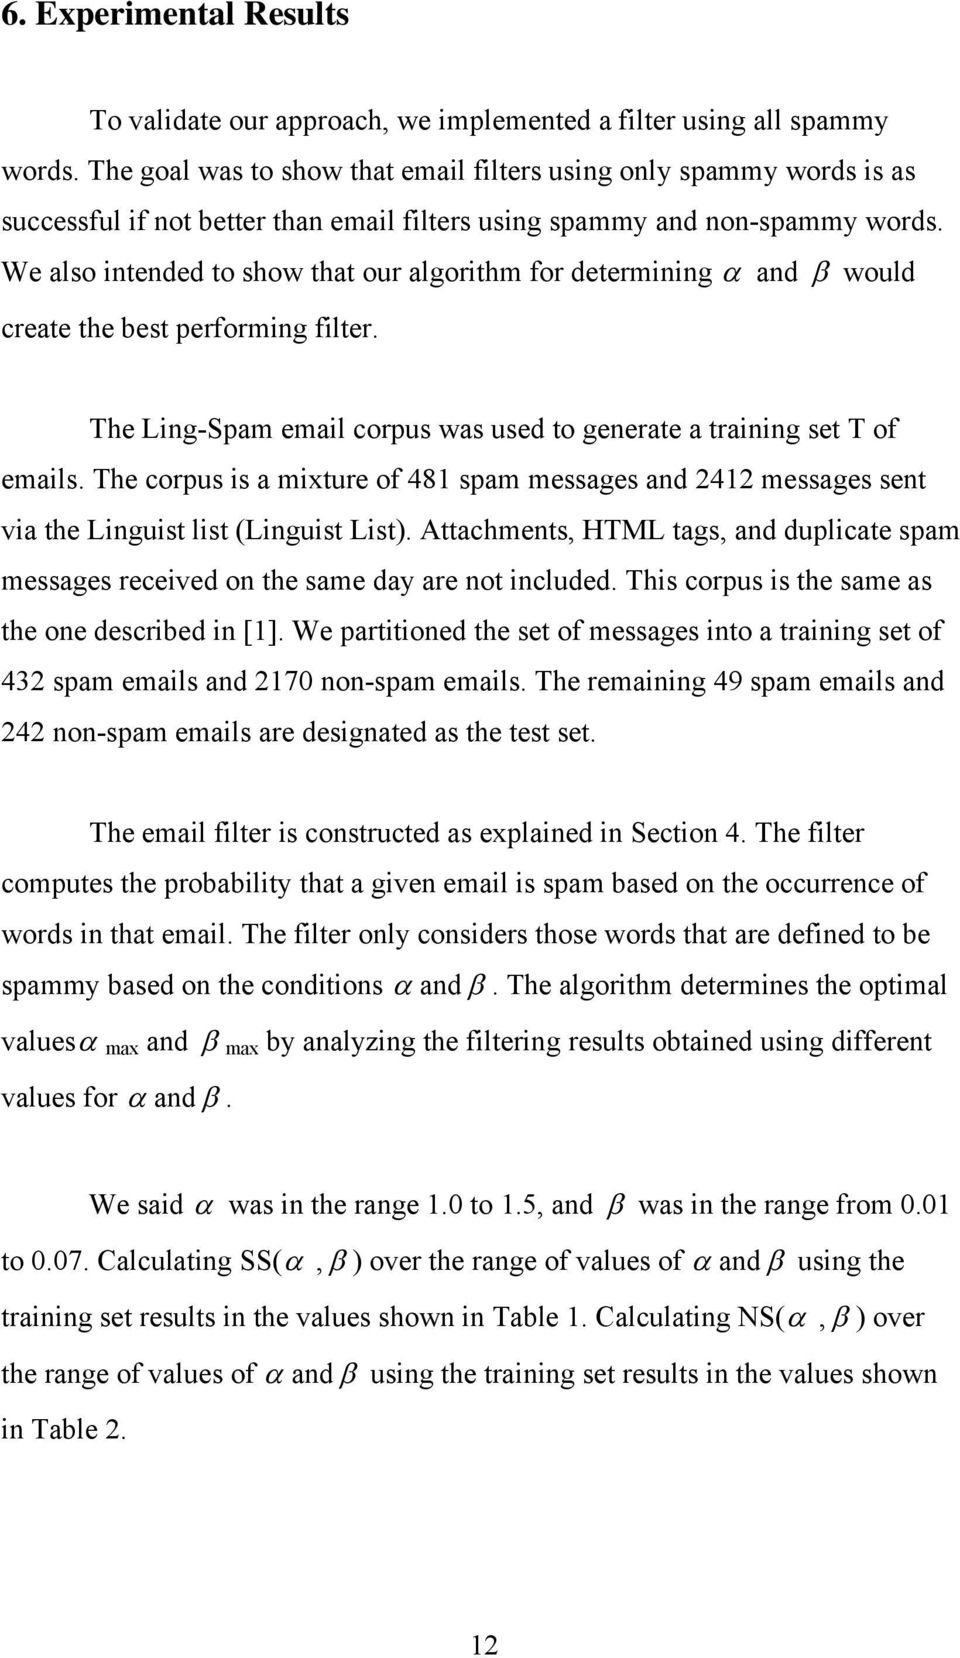 We also intended to show that our algorithm for determining and would create the best performing filter. The Ling-Spam email corpus was used to generate a training set T of emails.